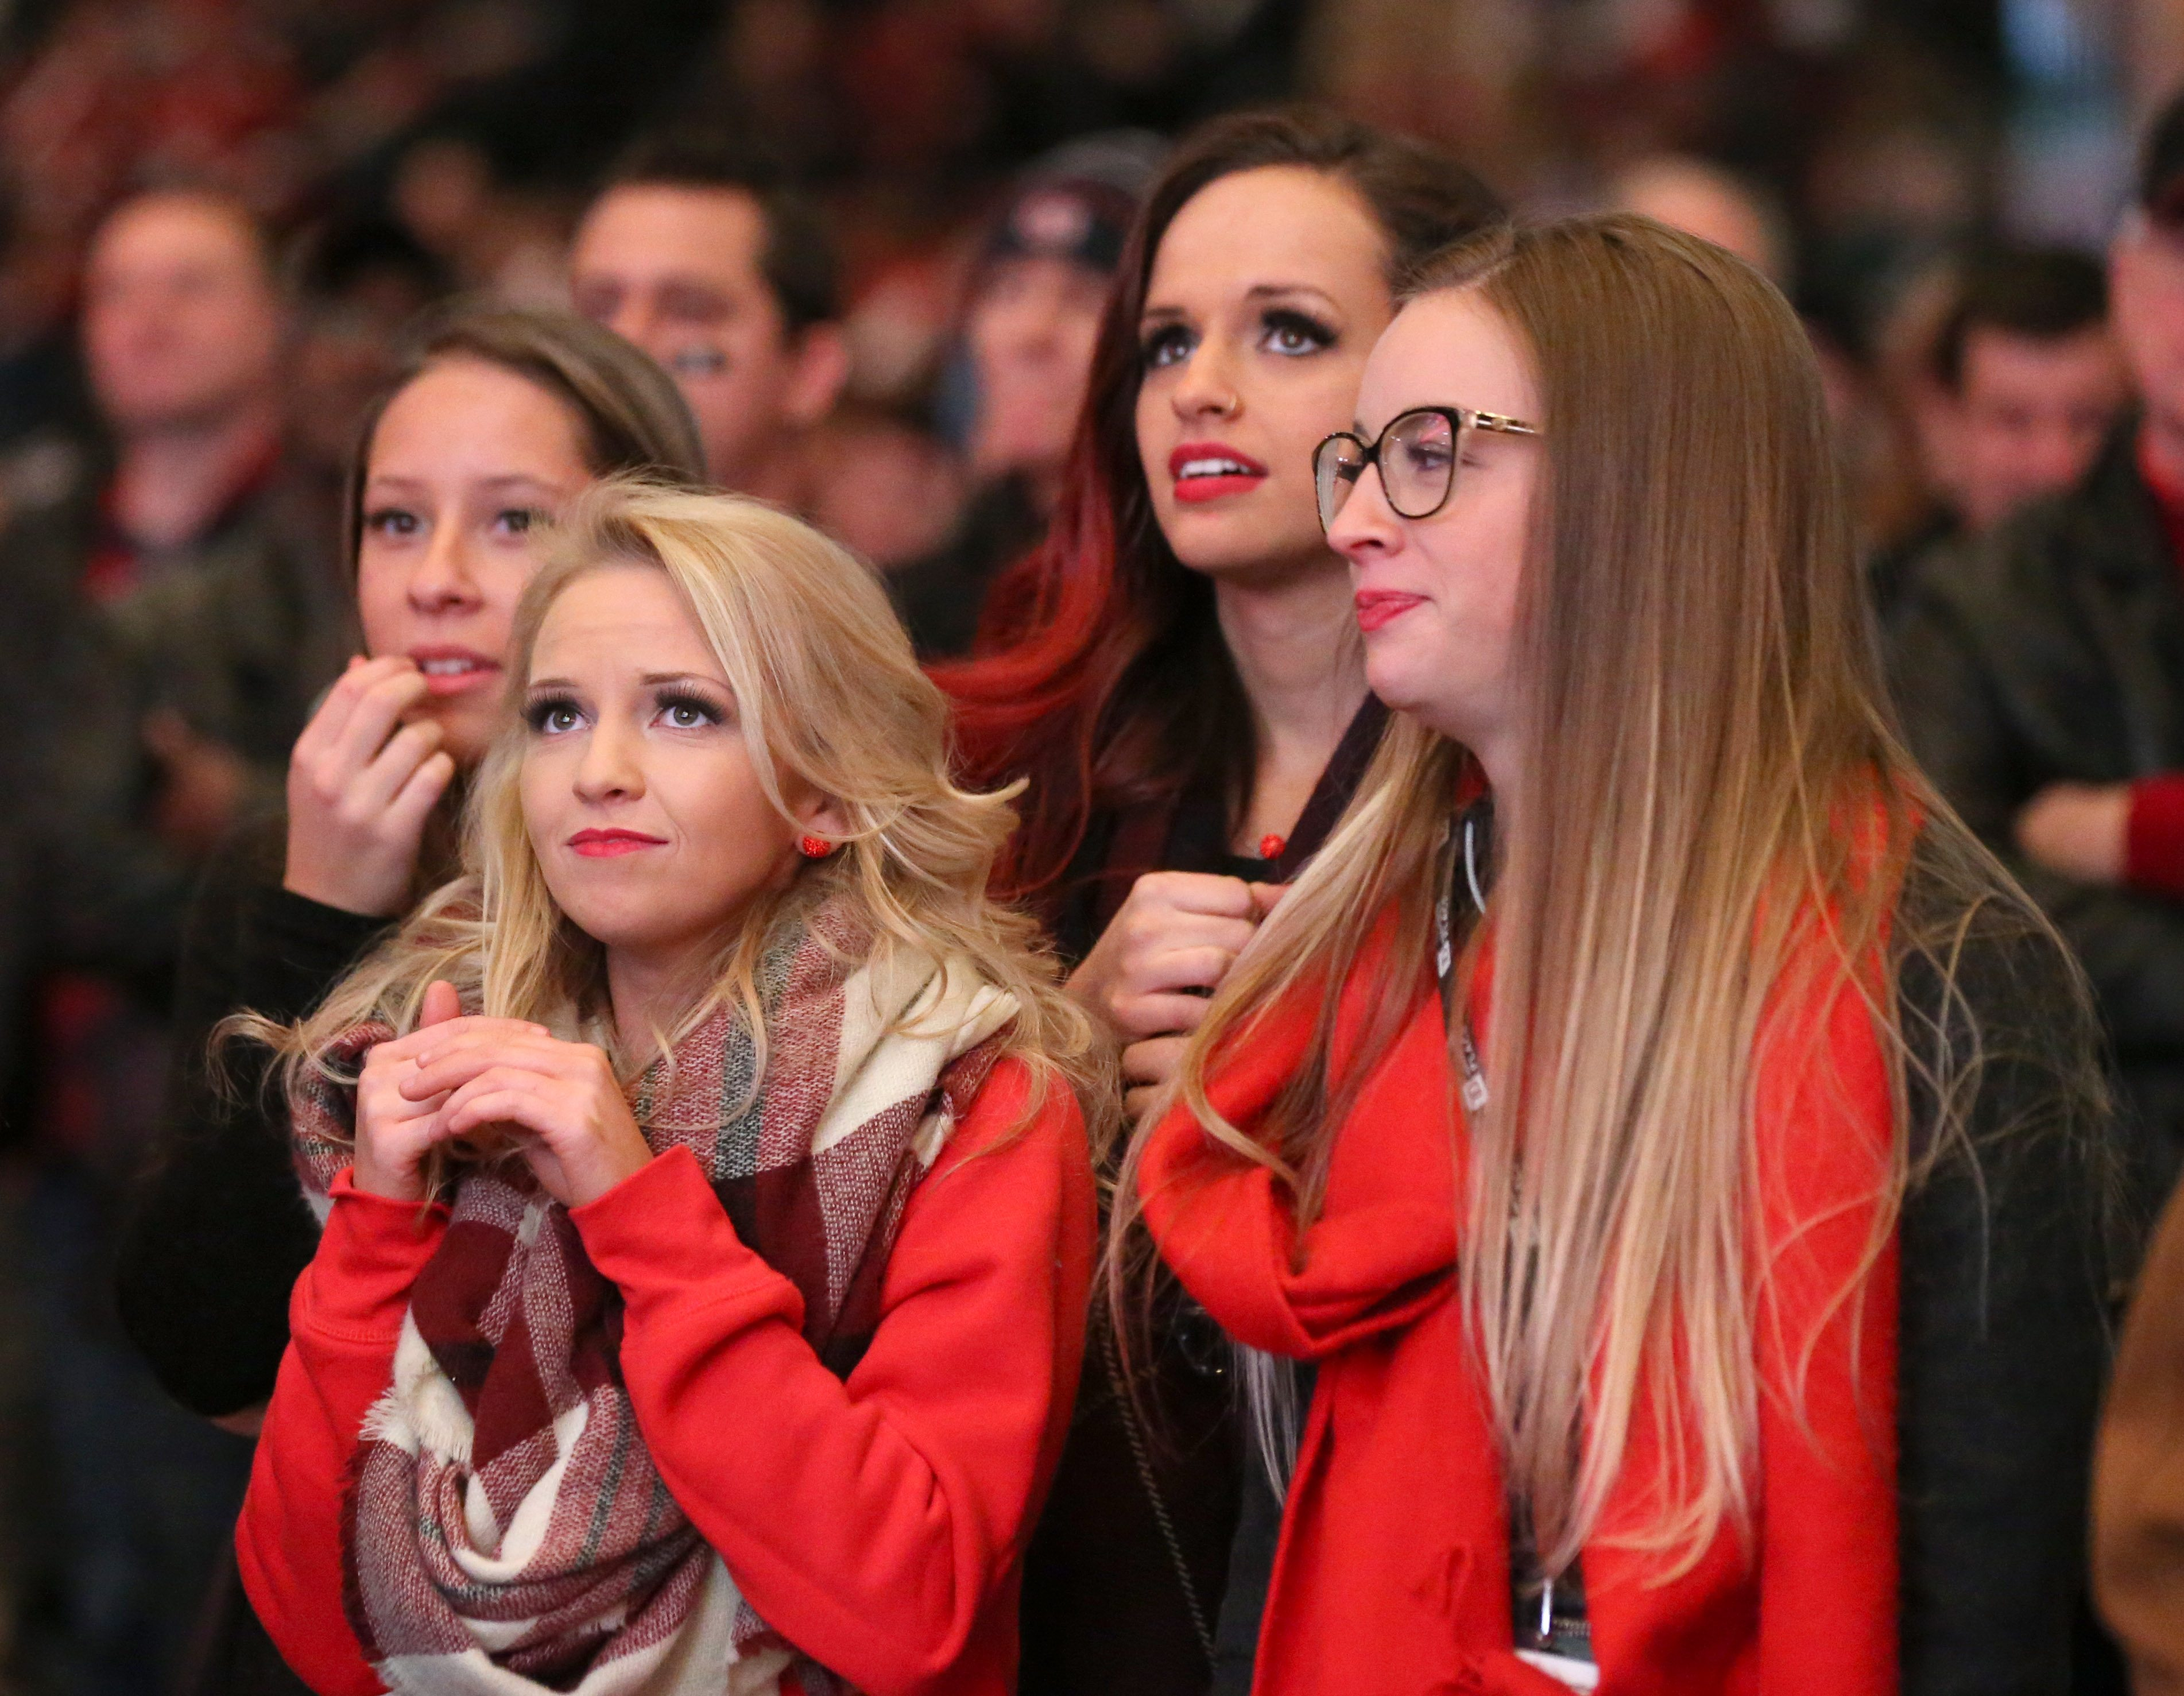 From left to right: Ashley Gentille, Emma Caldwell, Ruslana Malytska and Alex Robitaille watch as Edmonton takes the lead late in the 4th quarter. Photo by Jana Chytilova, OTTAWA magazine.